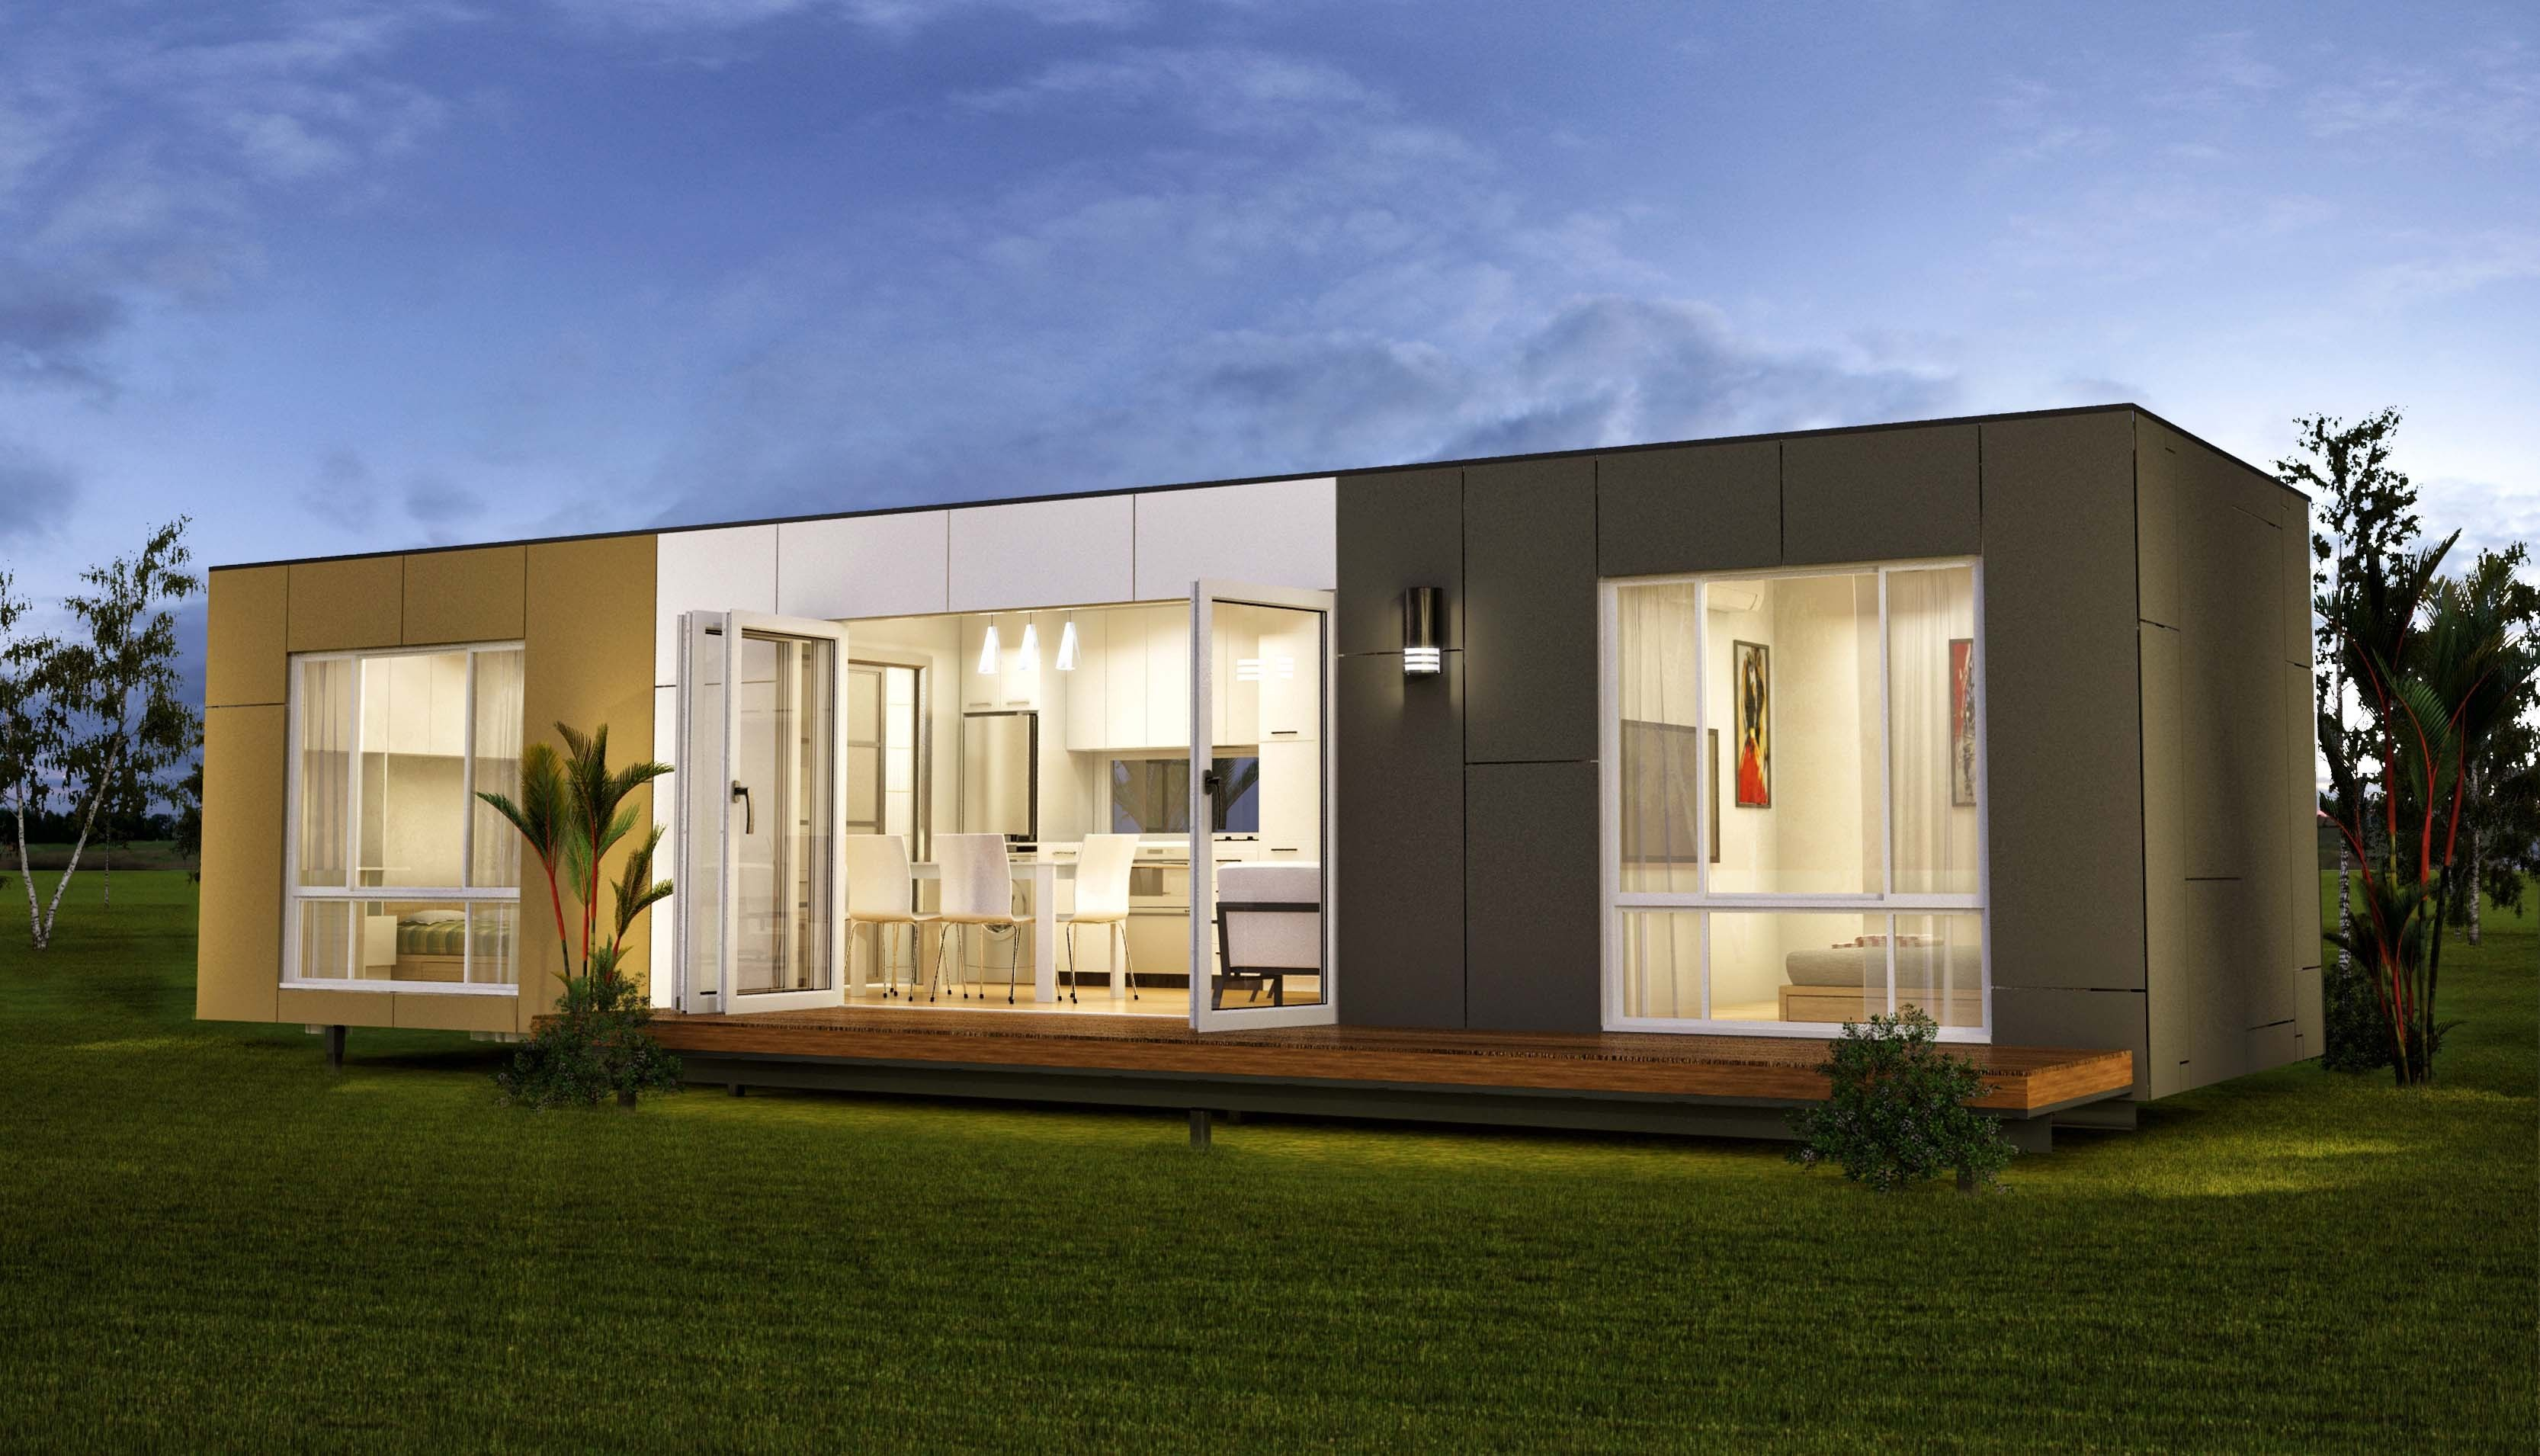 San marino two bedroom granny flats prefab container for Modular granny flats